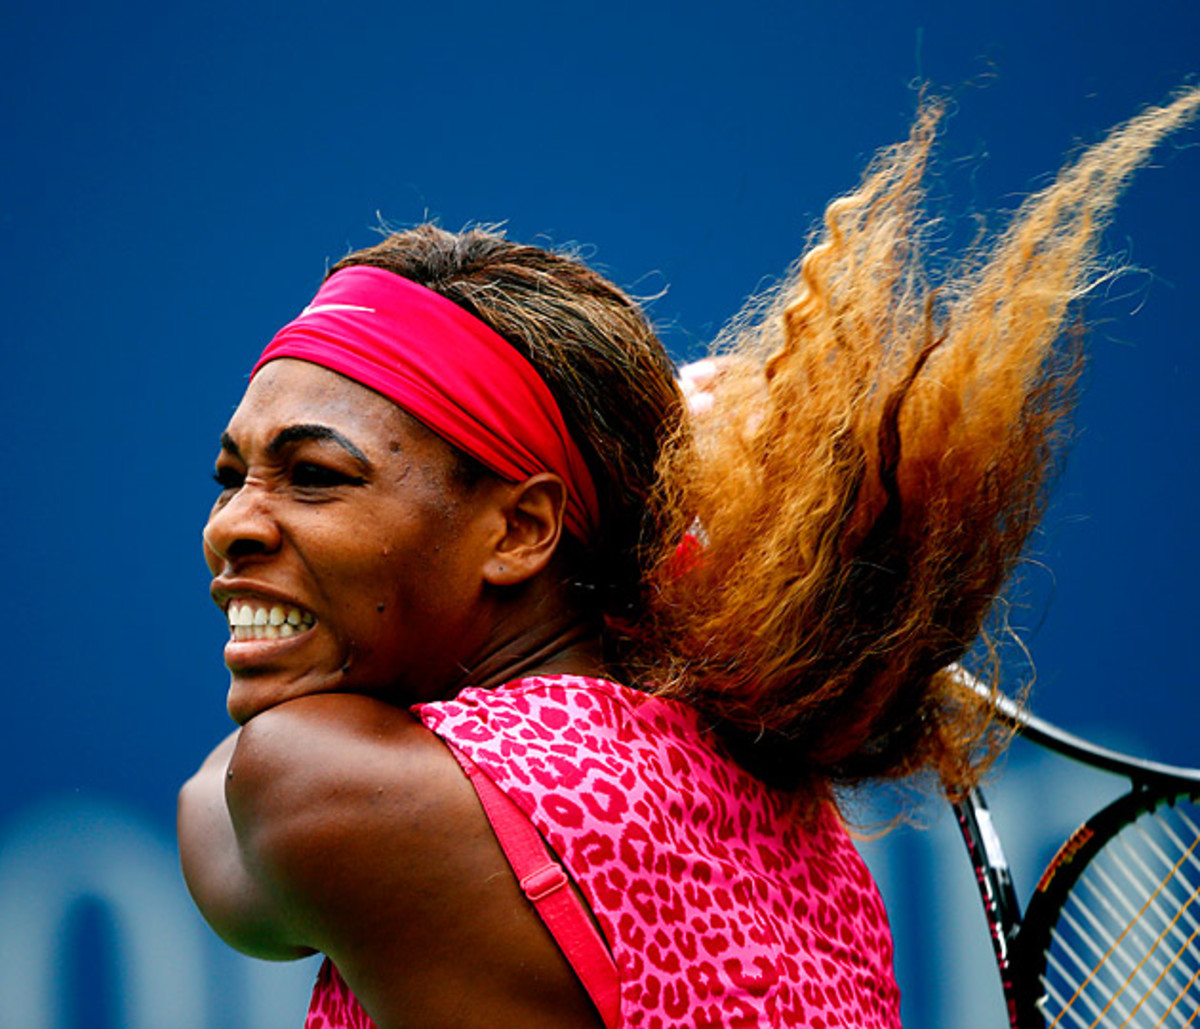 serena photo of the day